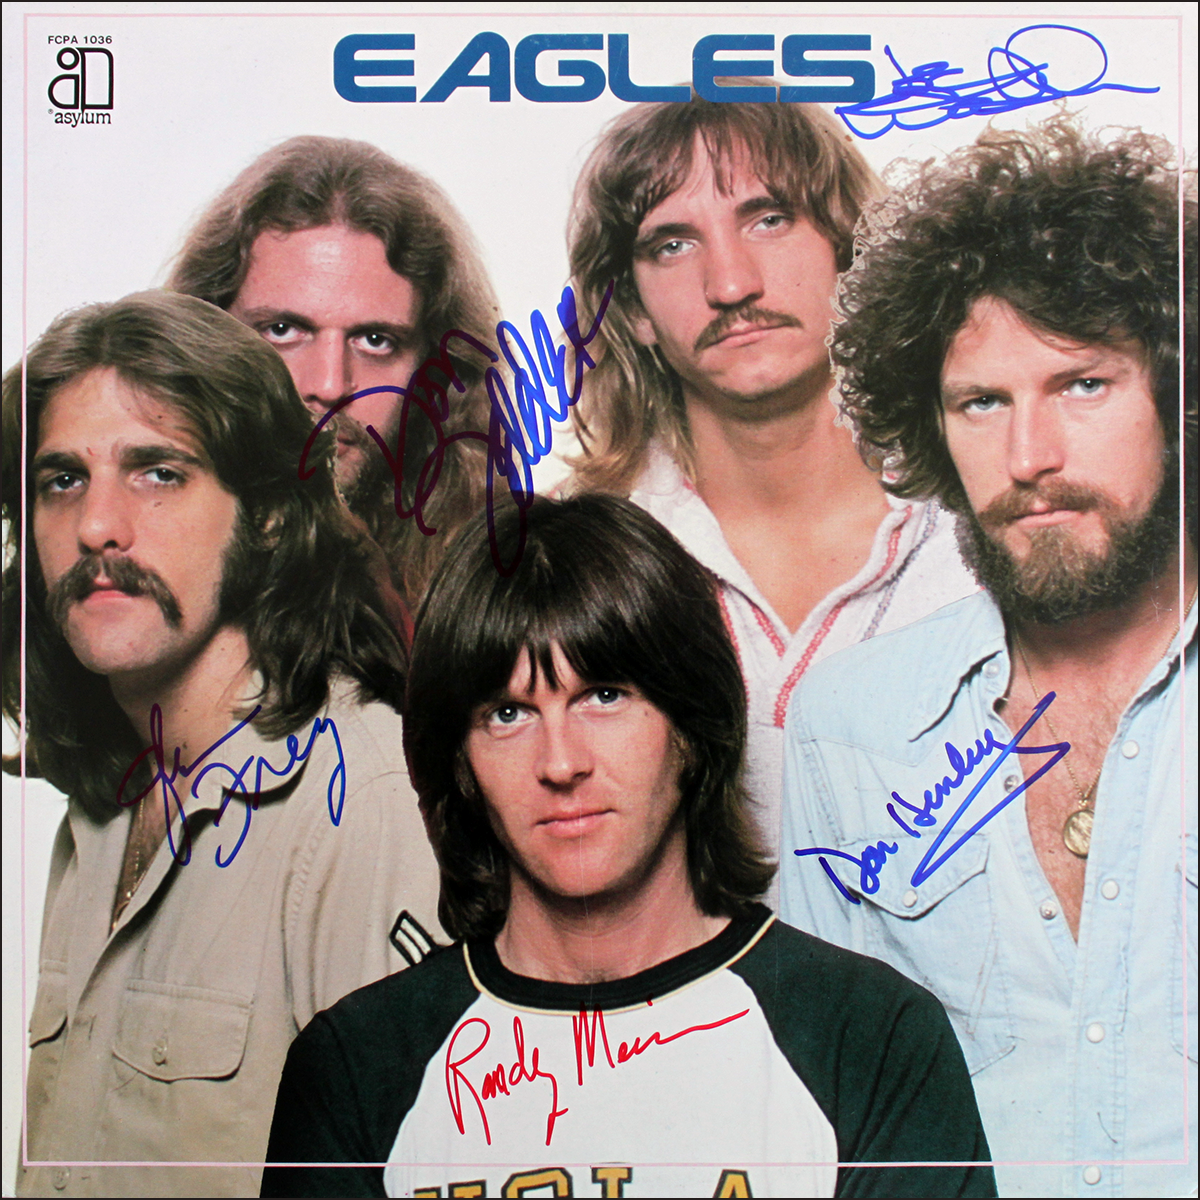 Eagles LP - Eagles